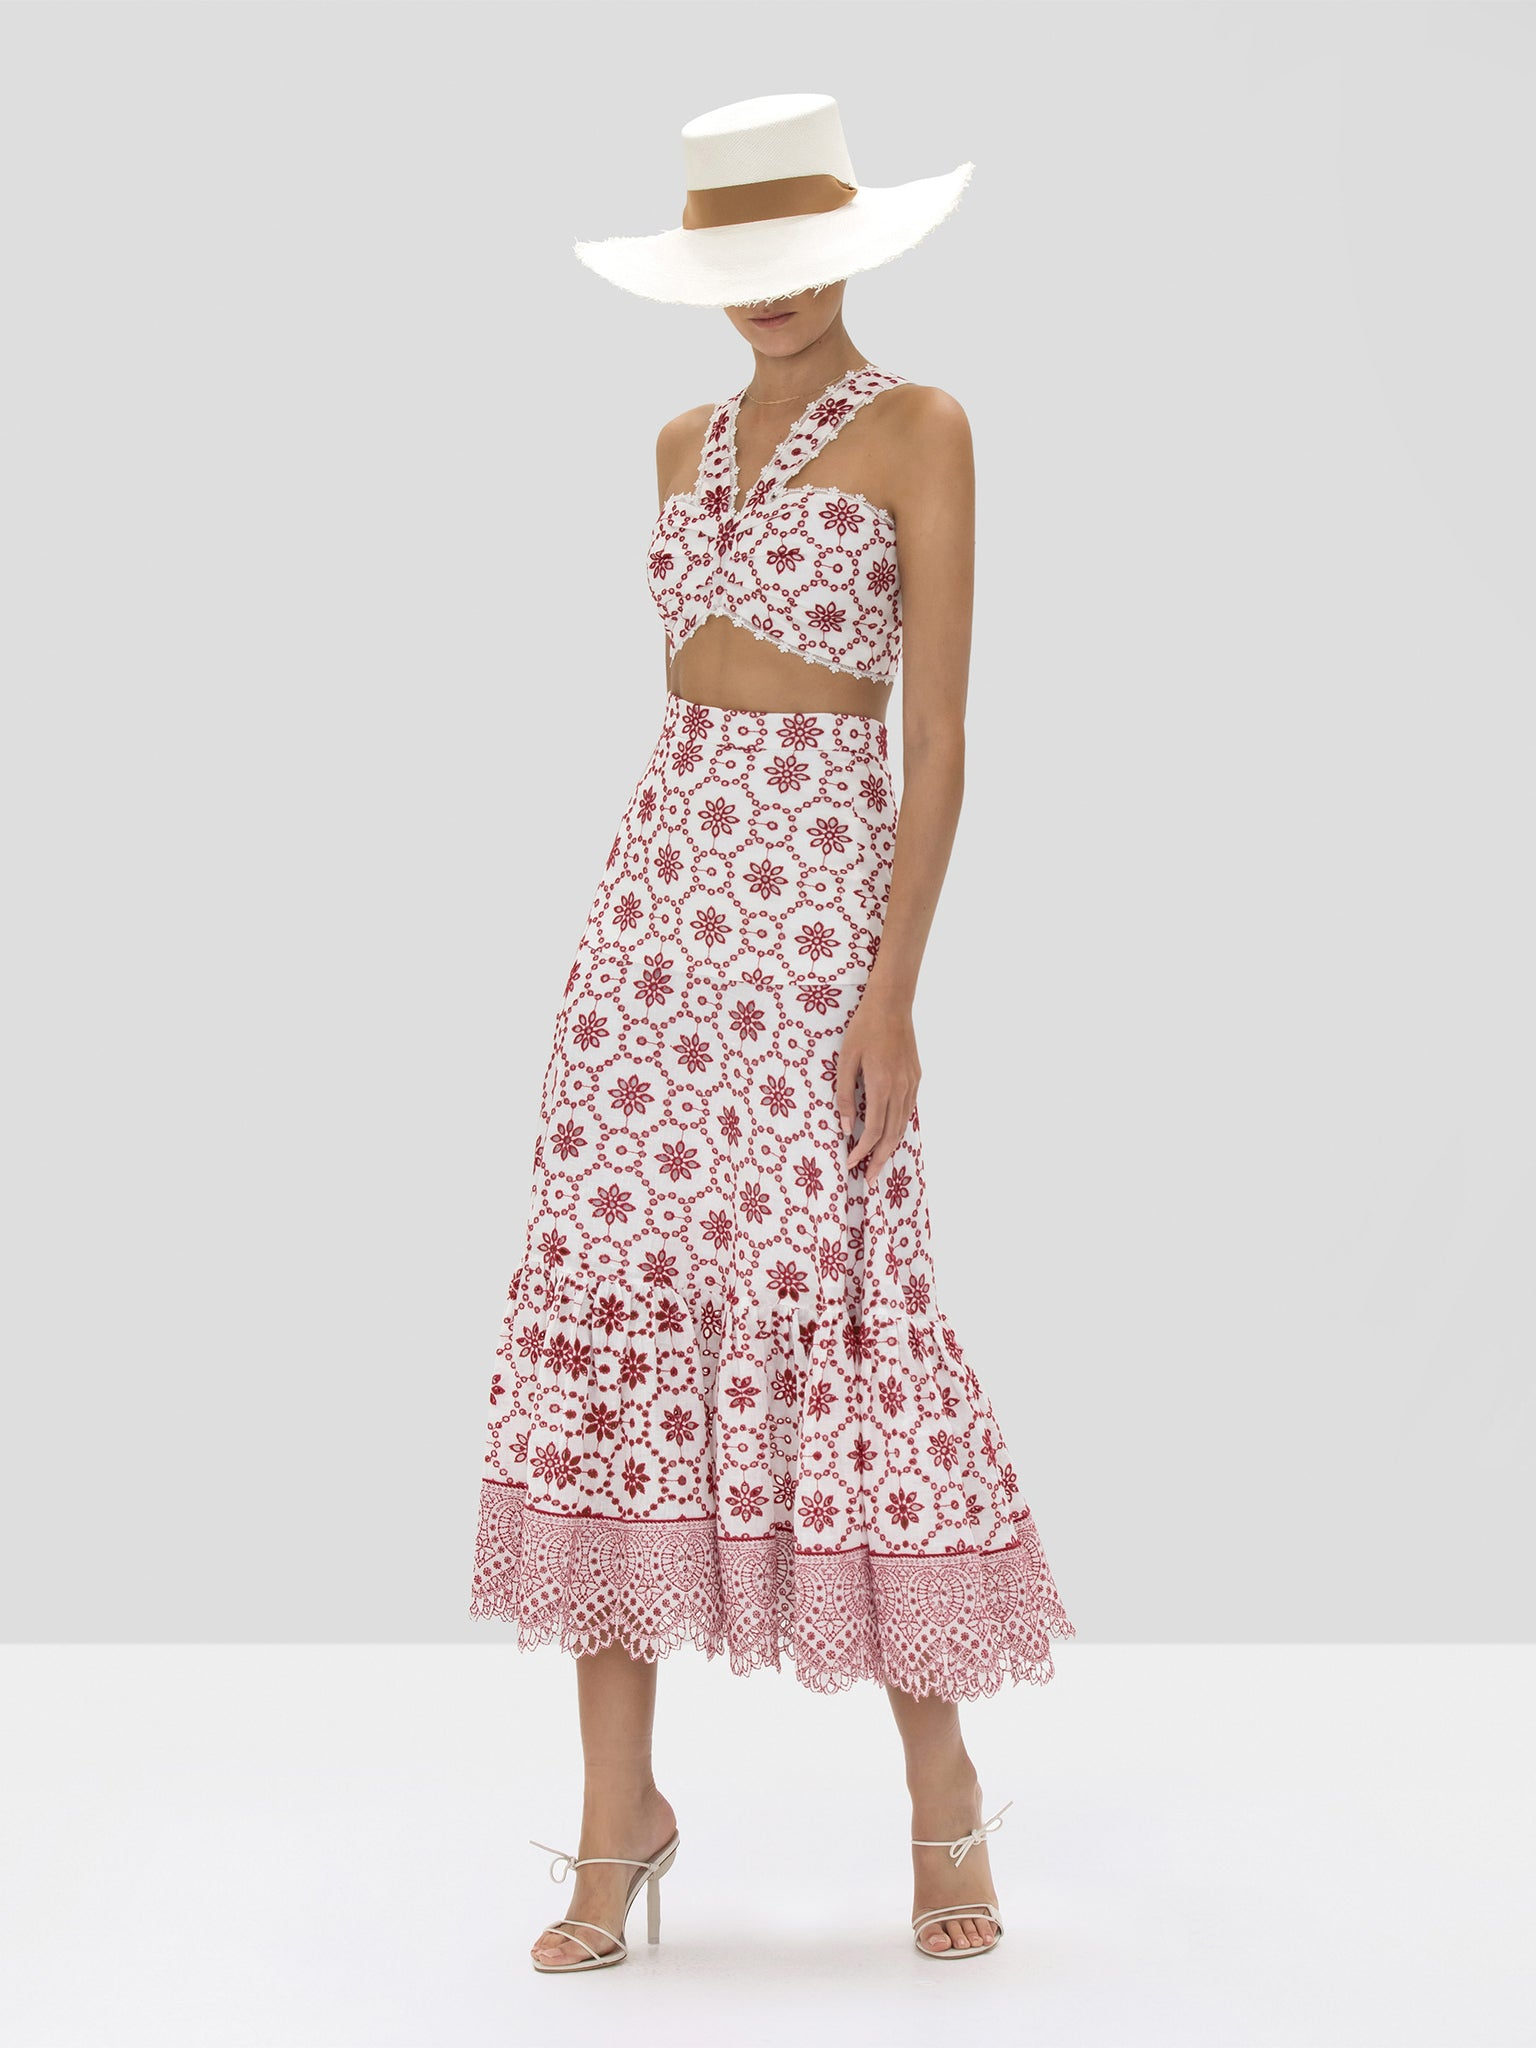 Alexis Barta Crop Top and Paulina Skirt in Berry Eyelet Embroidery from Spring Summer 2020